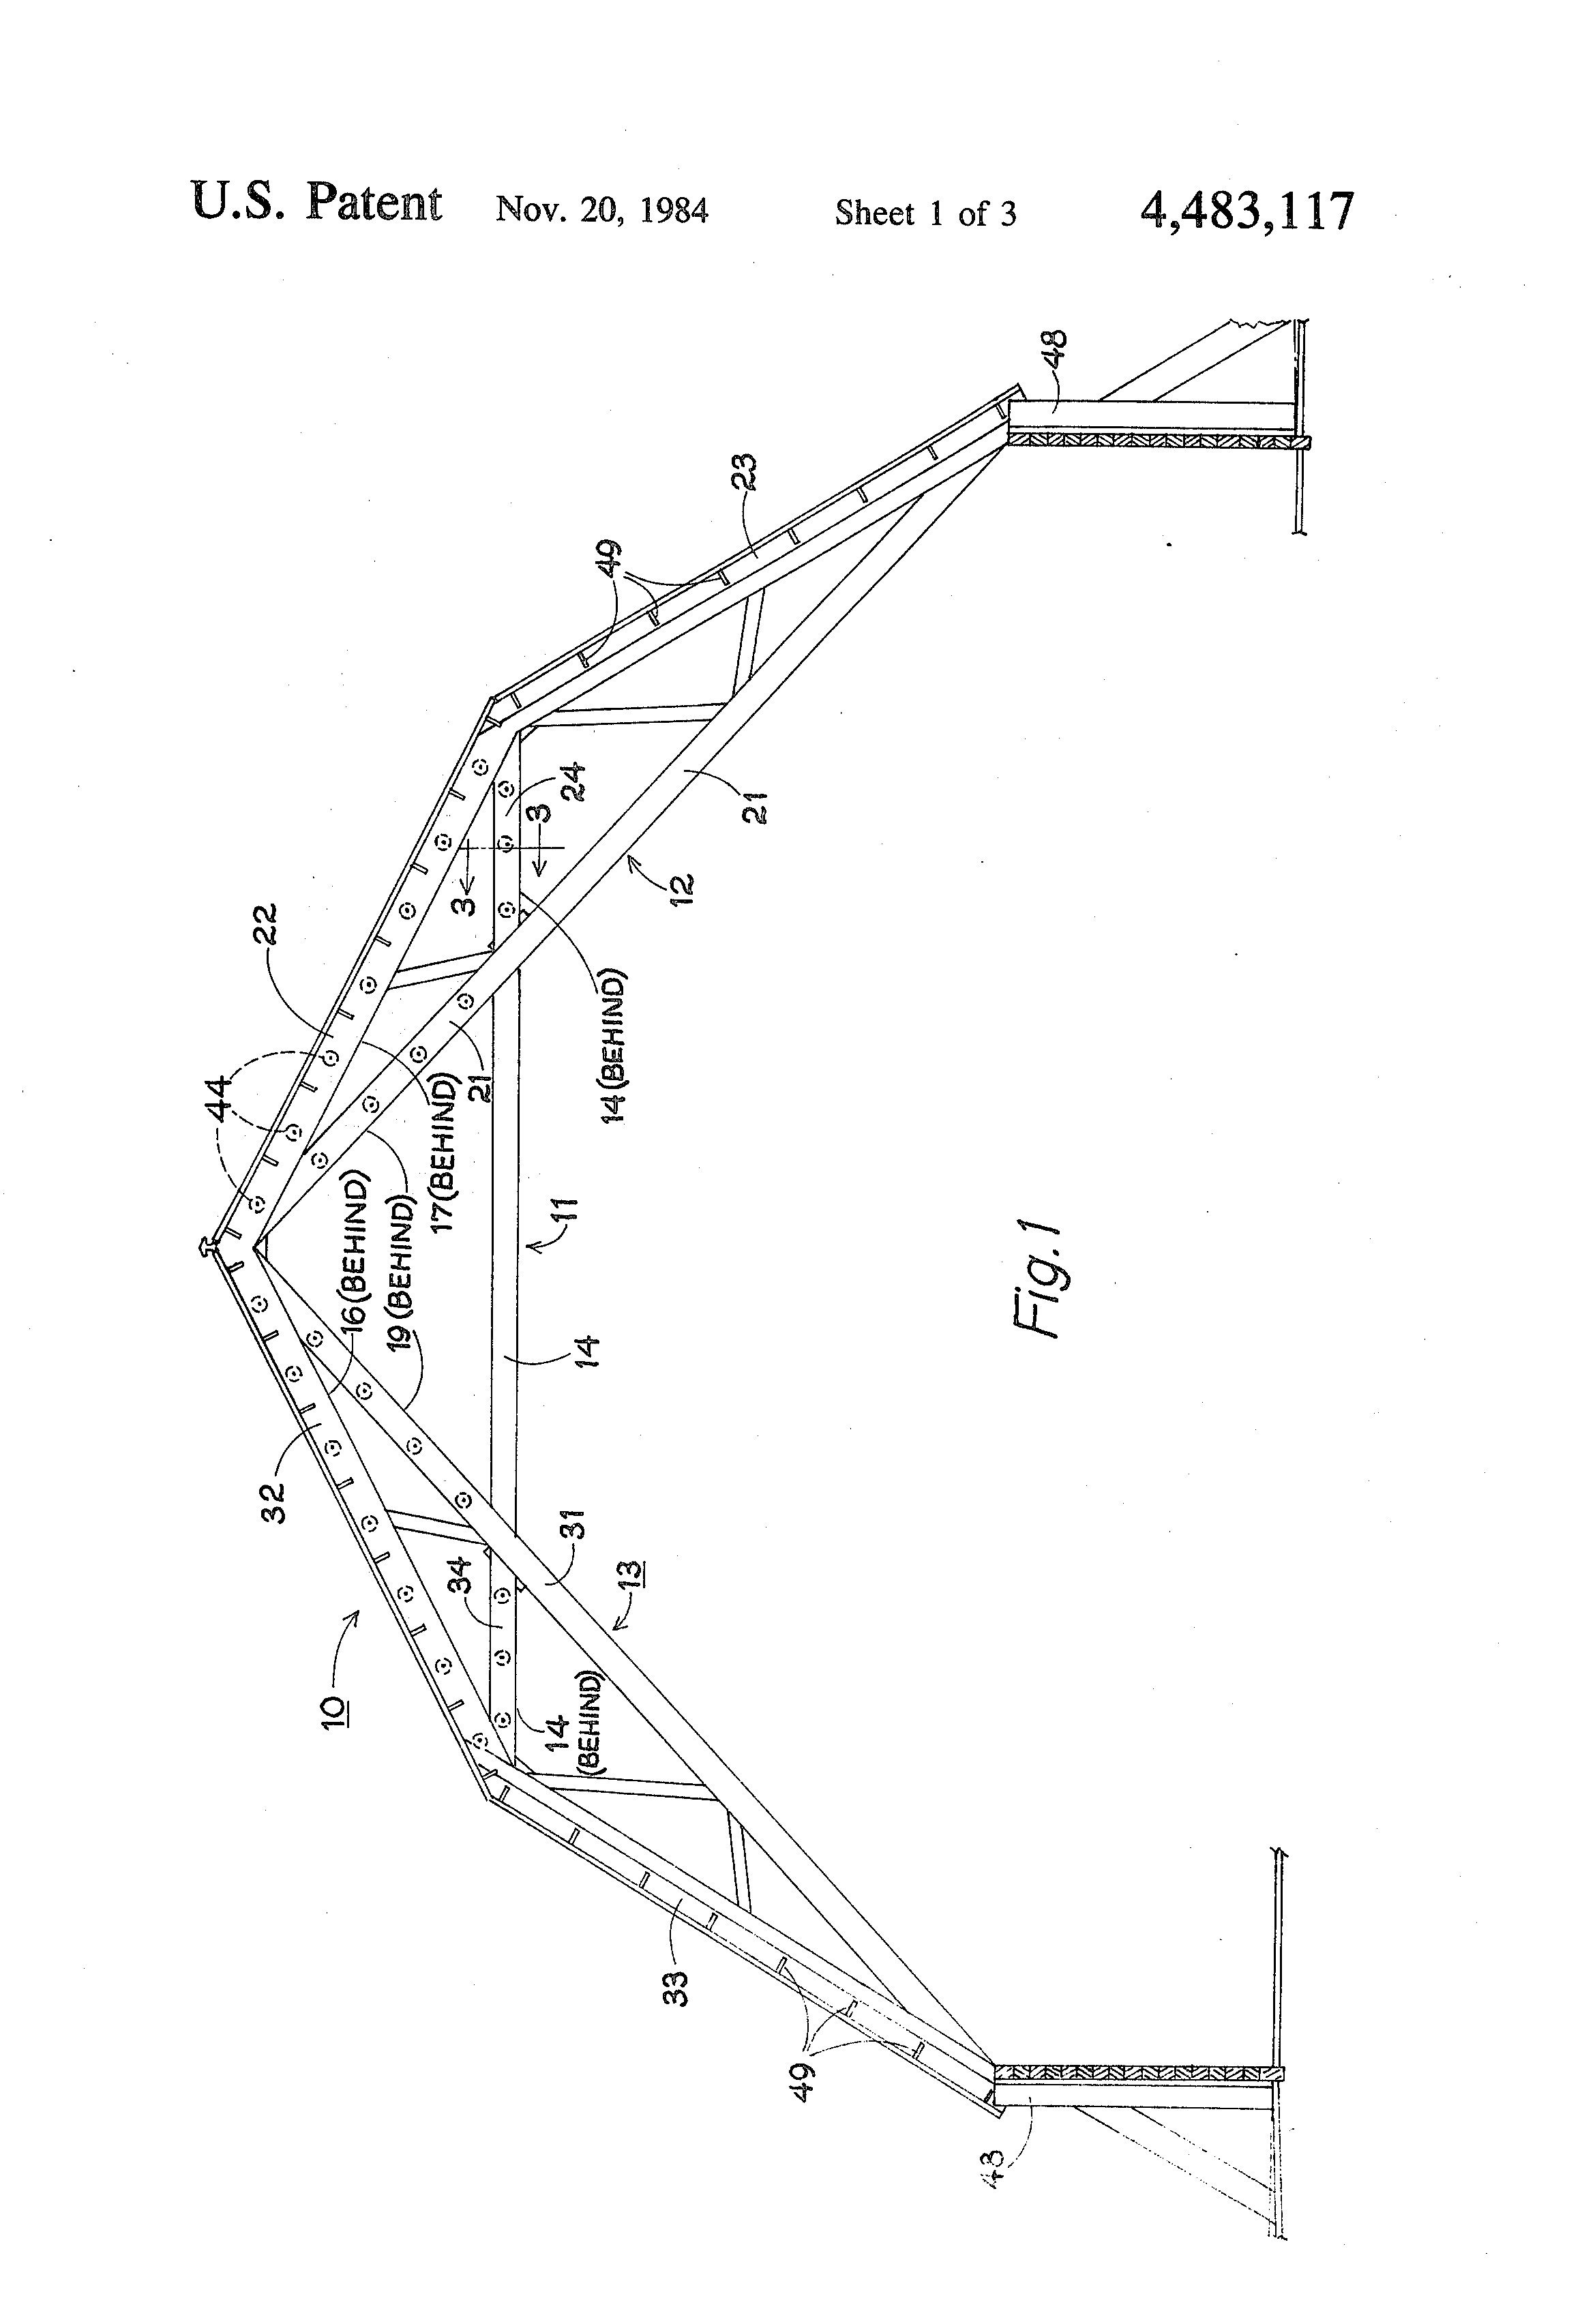 tie rod diagram us b2 plurality of cables having different